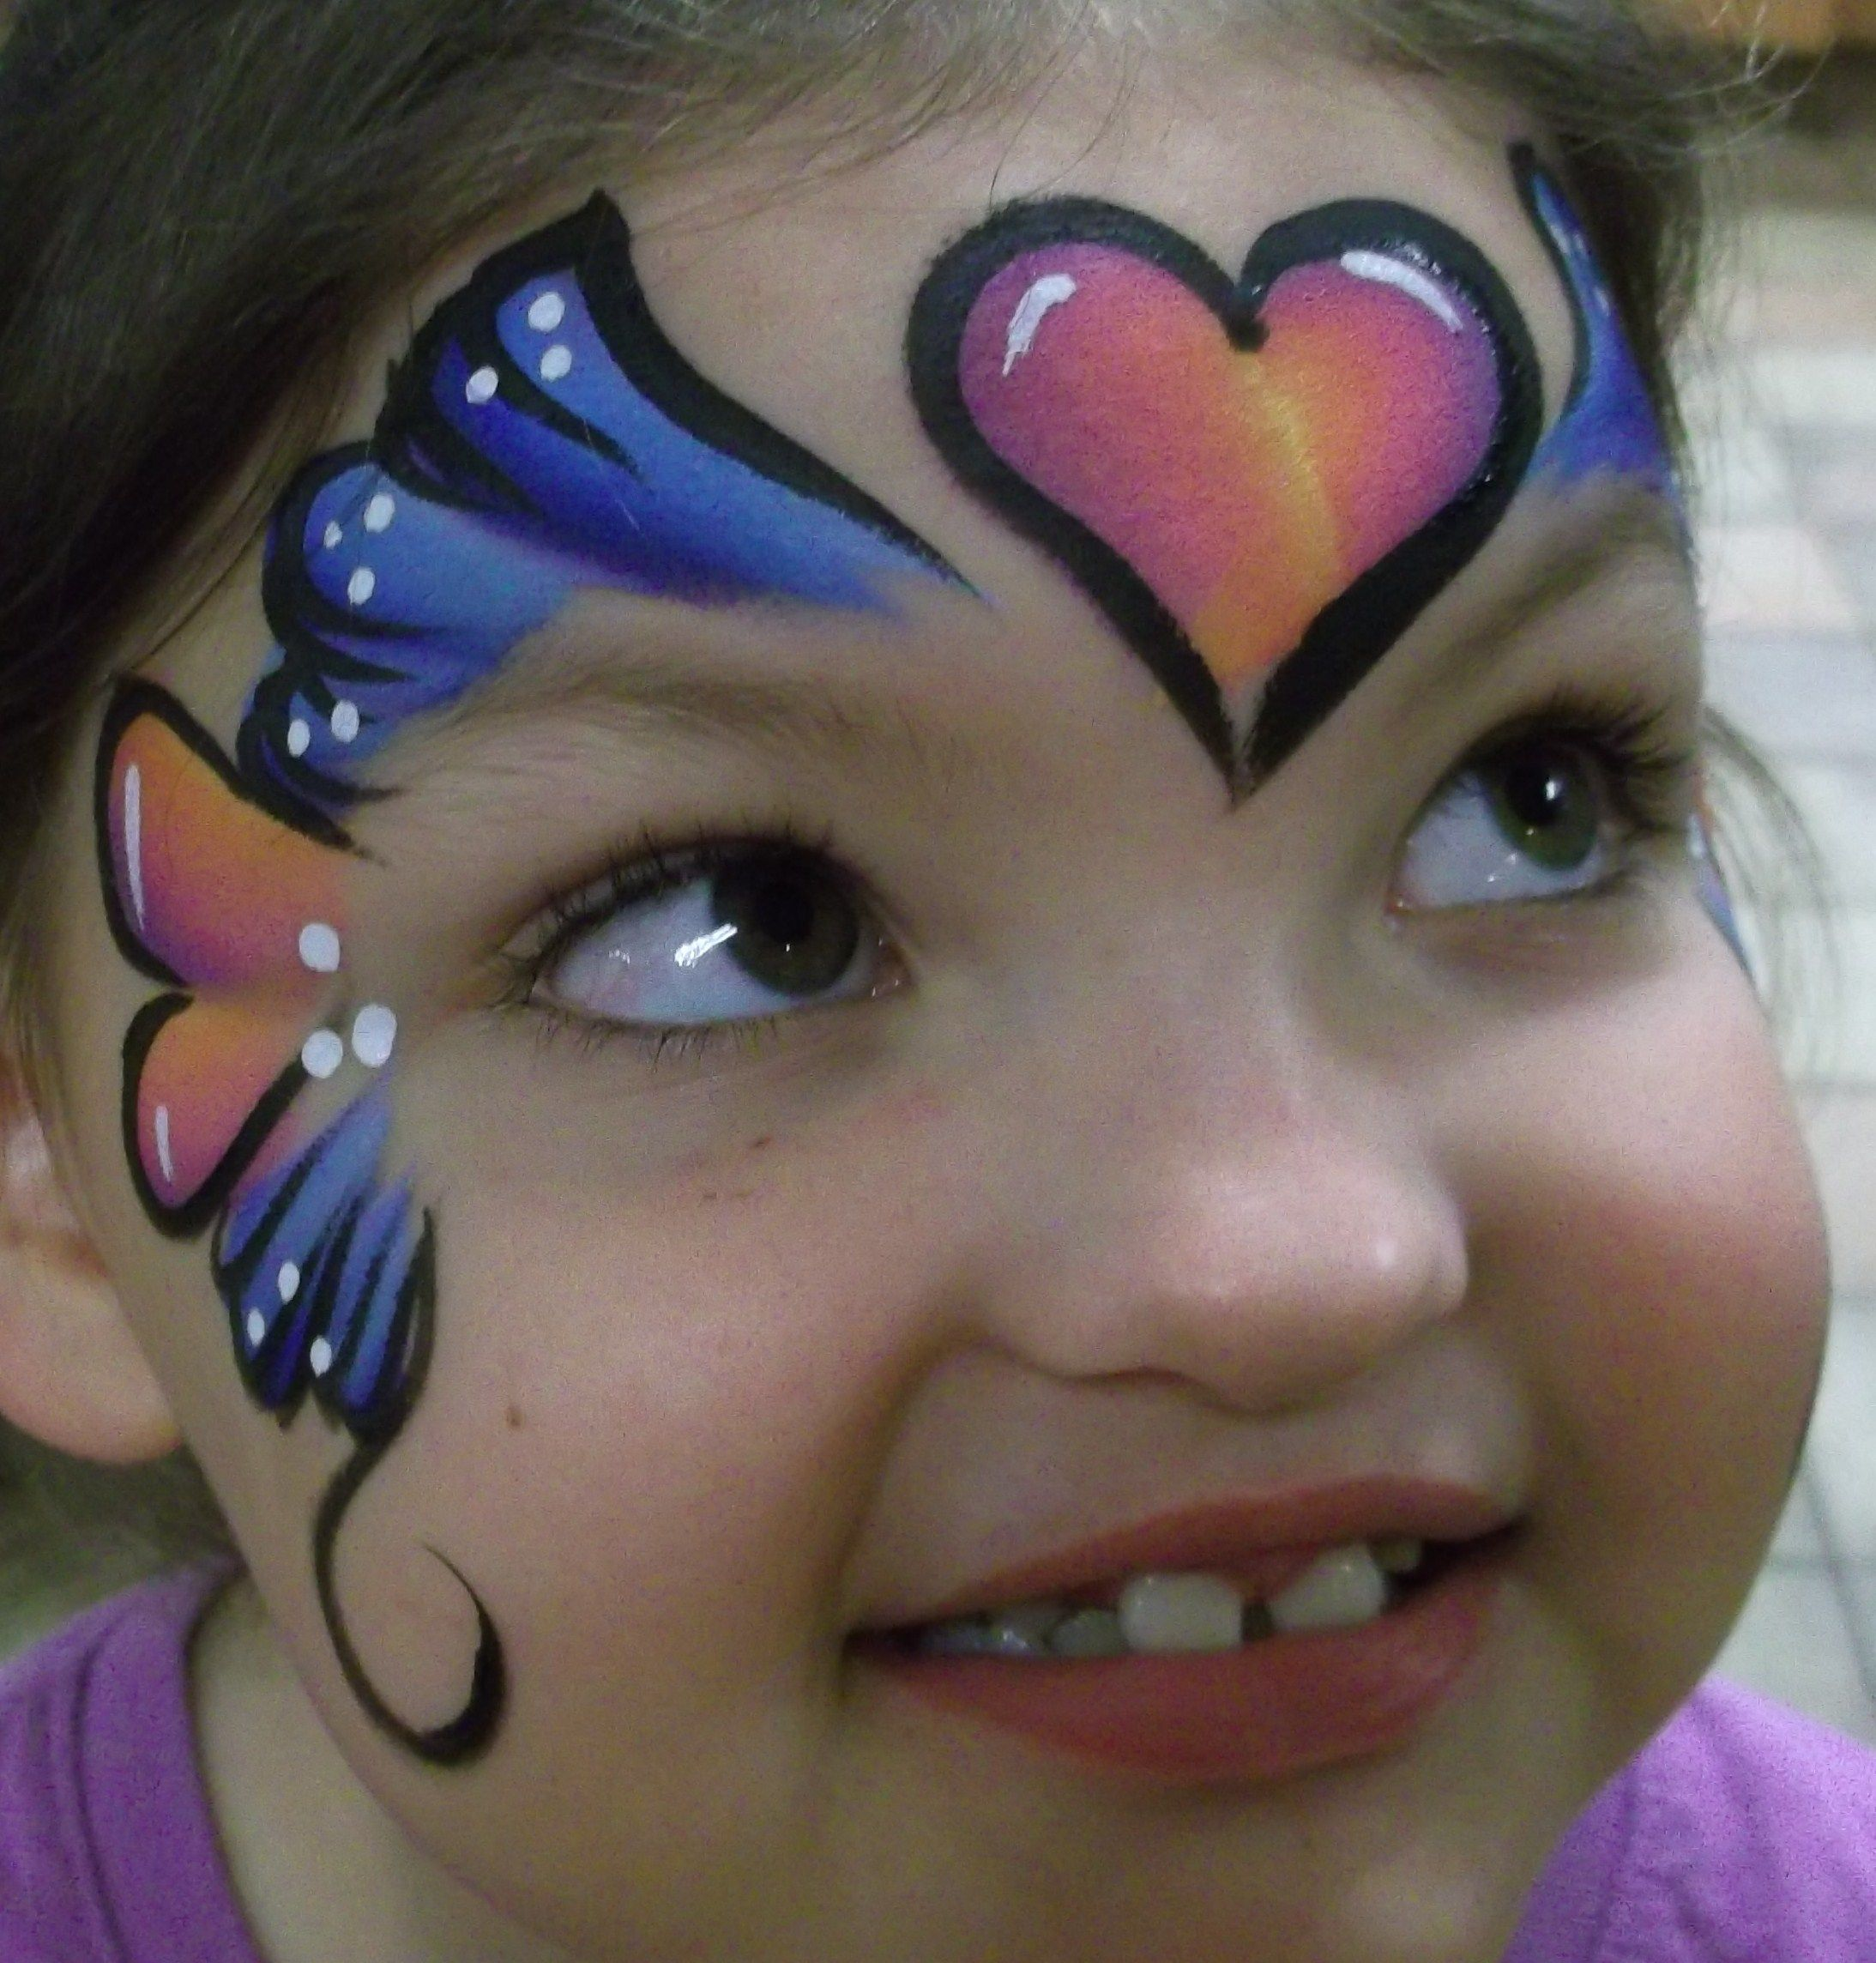 Face painting business cards google search face painting face painting business cards google search colourmoves